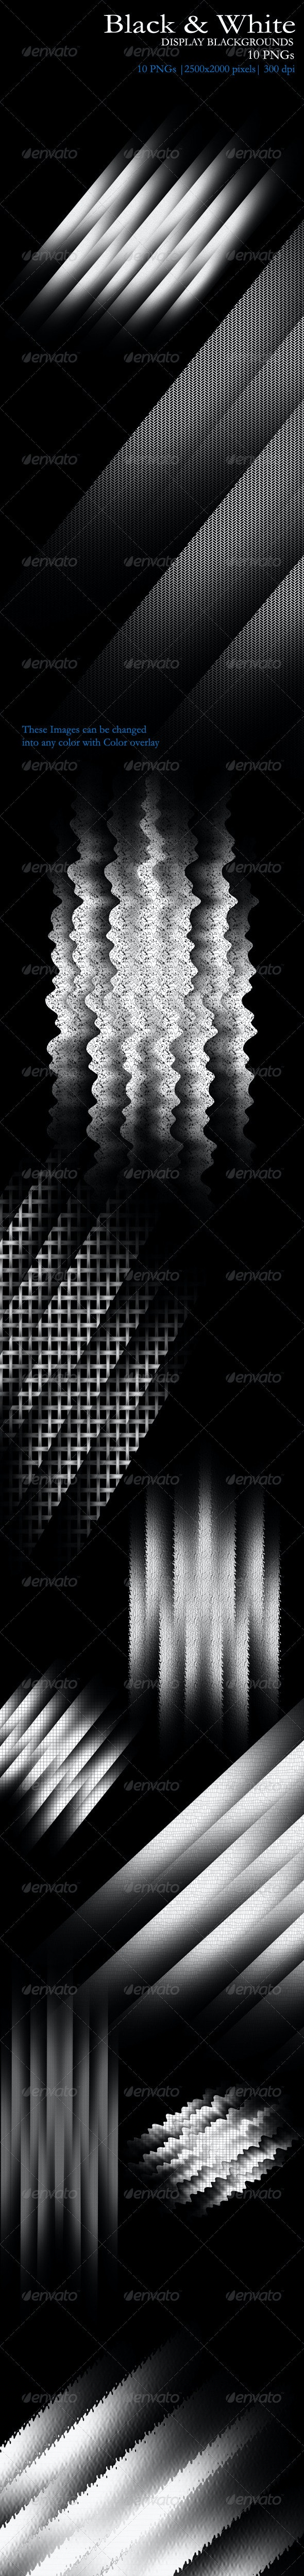 Black & White Display Backgrounds (PNG) - Backgrounds Graphics